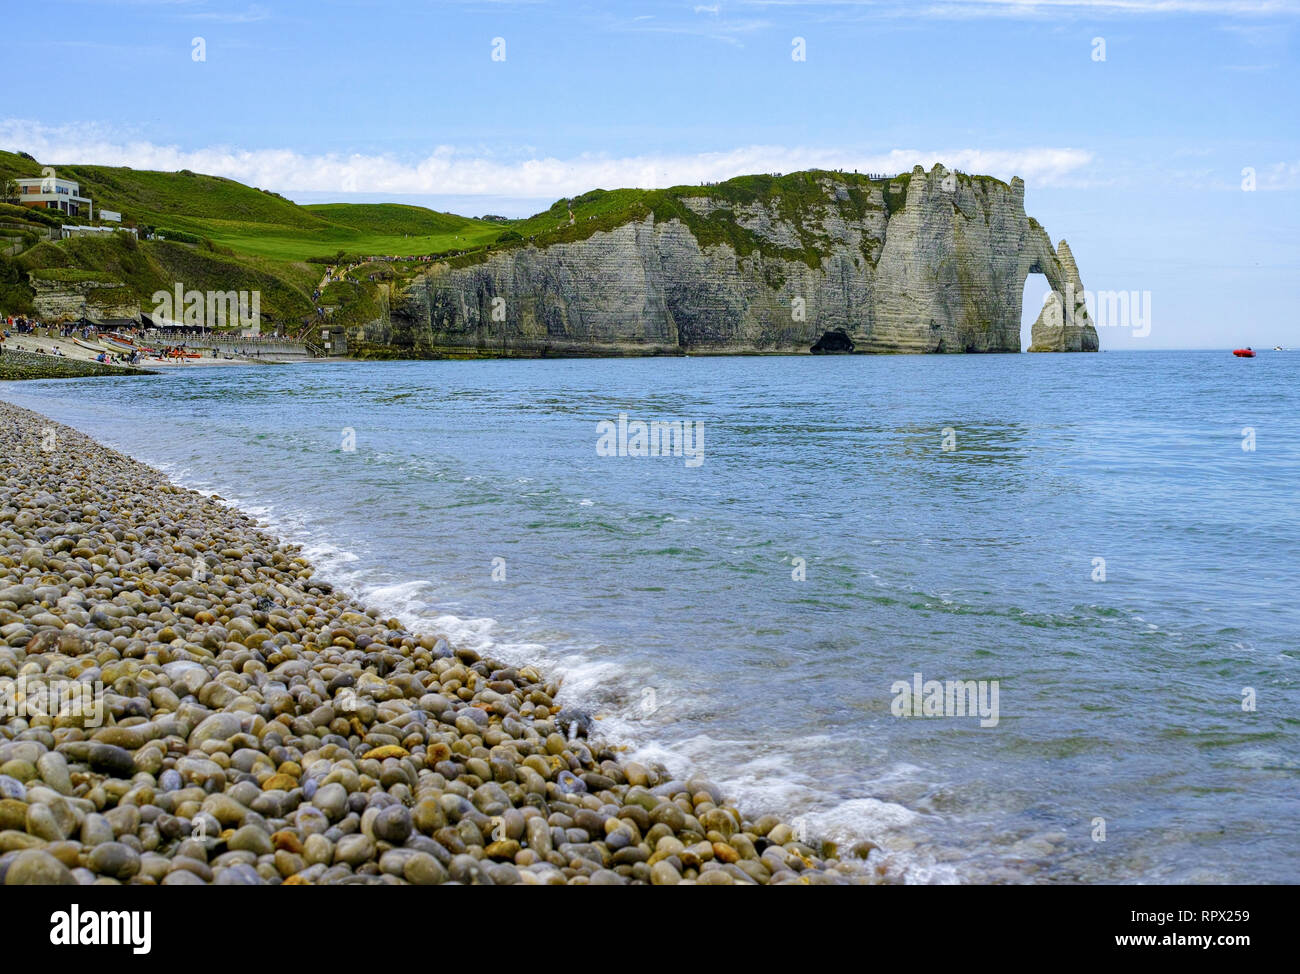 Landscape with scenic alabaster chalk cliffs of Etretat and coast of Atlantic ocean, travel and vacation destination in Normandy, France - Stock Image